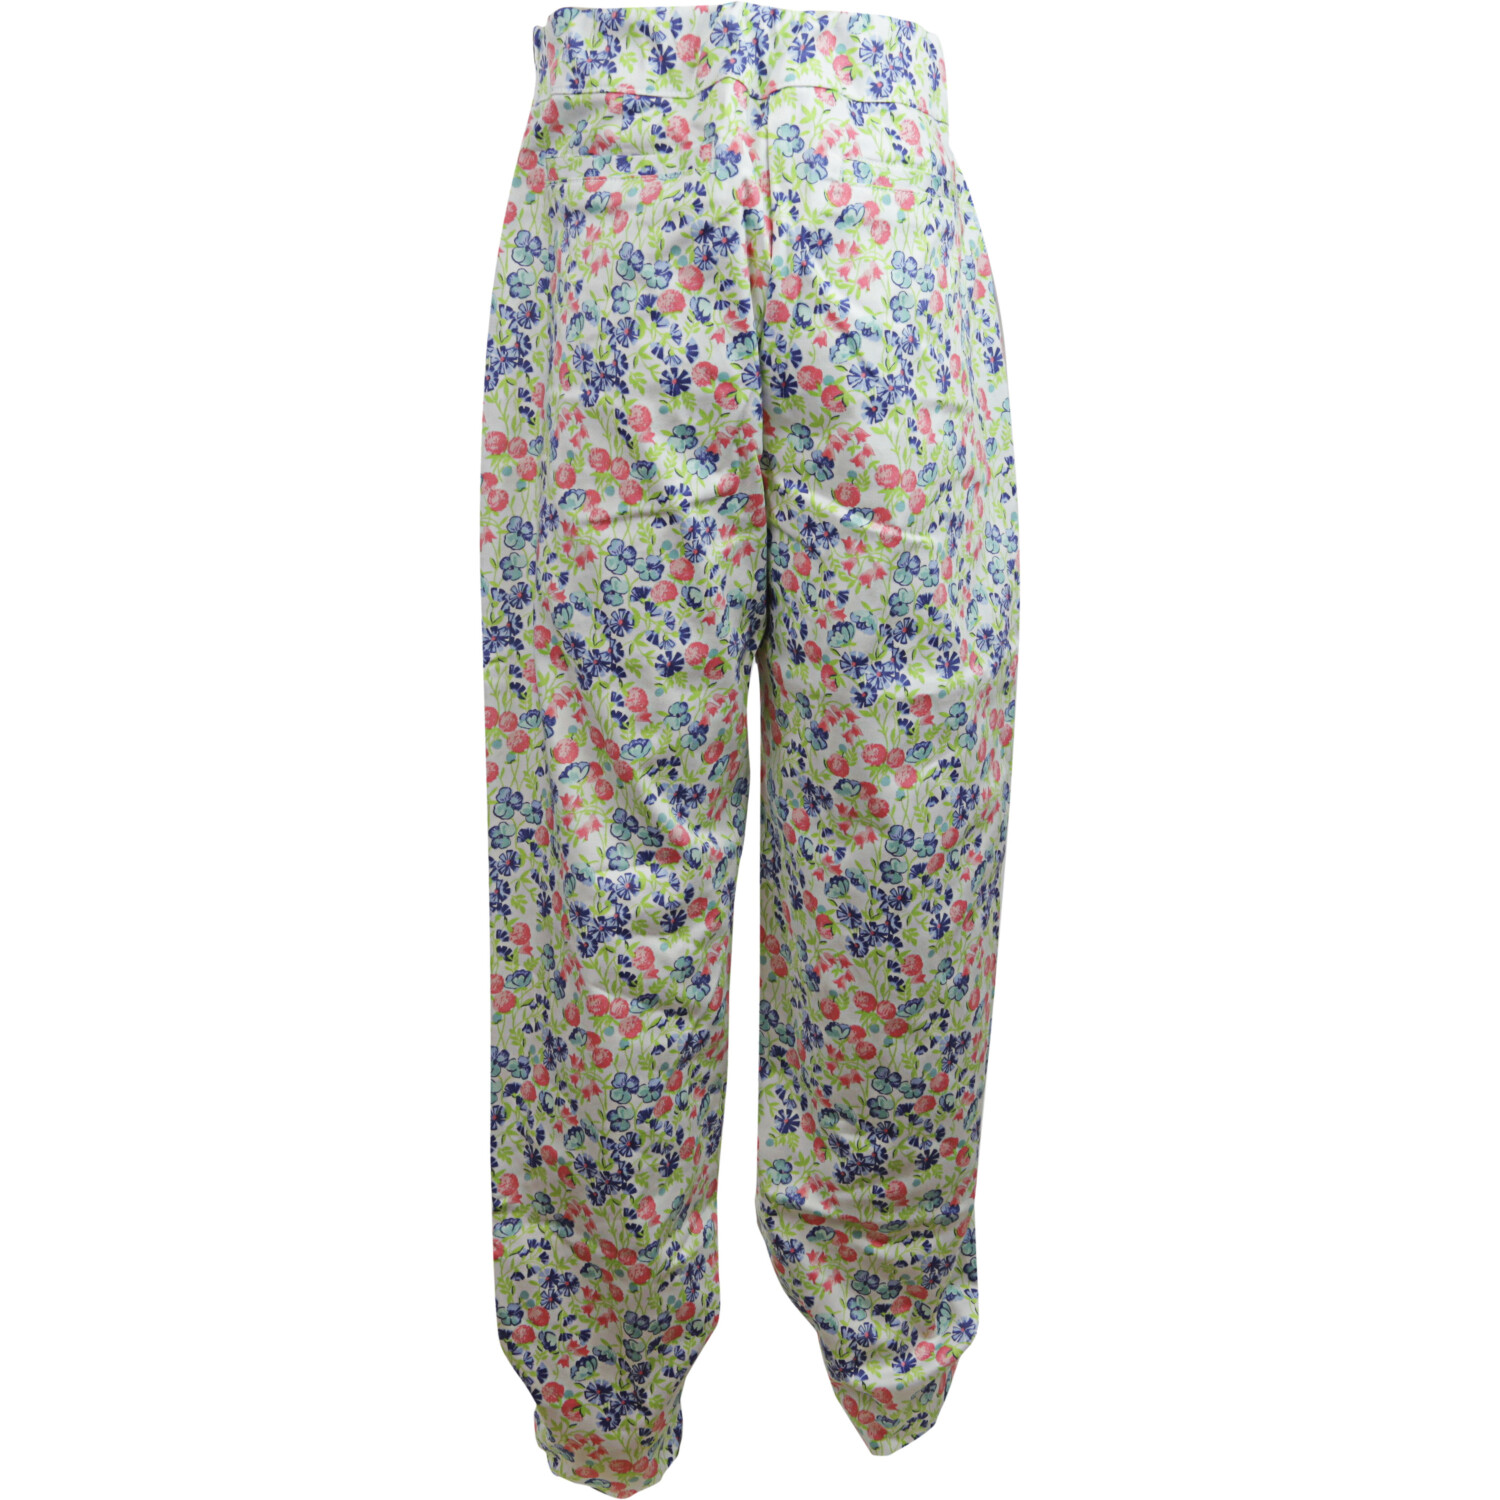 Janie And Jack White Floral Ditsy Pant Pants - 3-6 Months